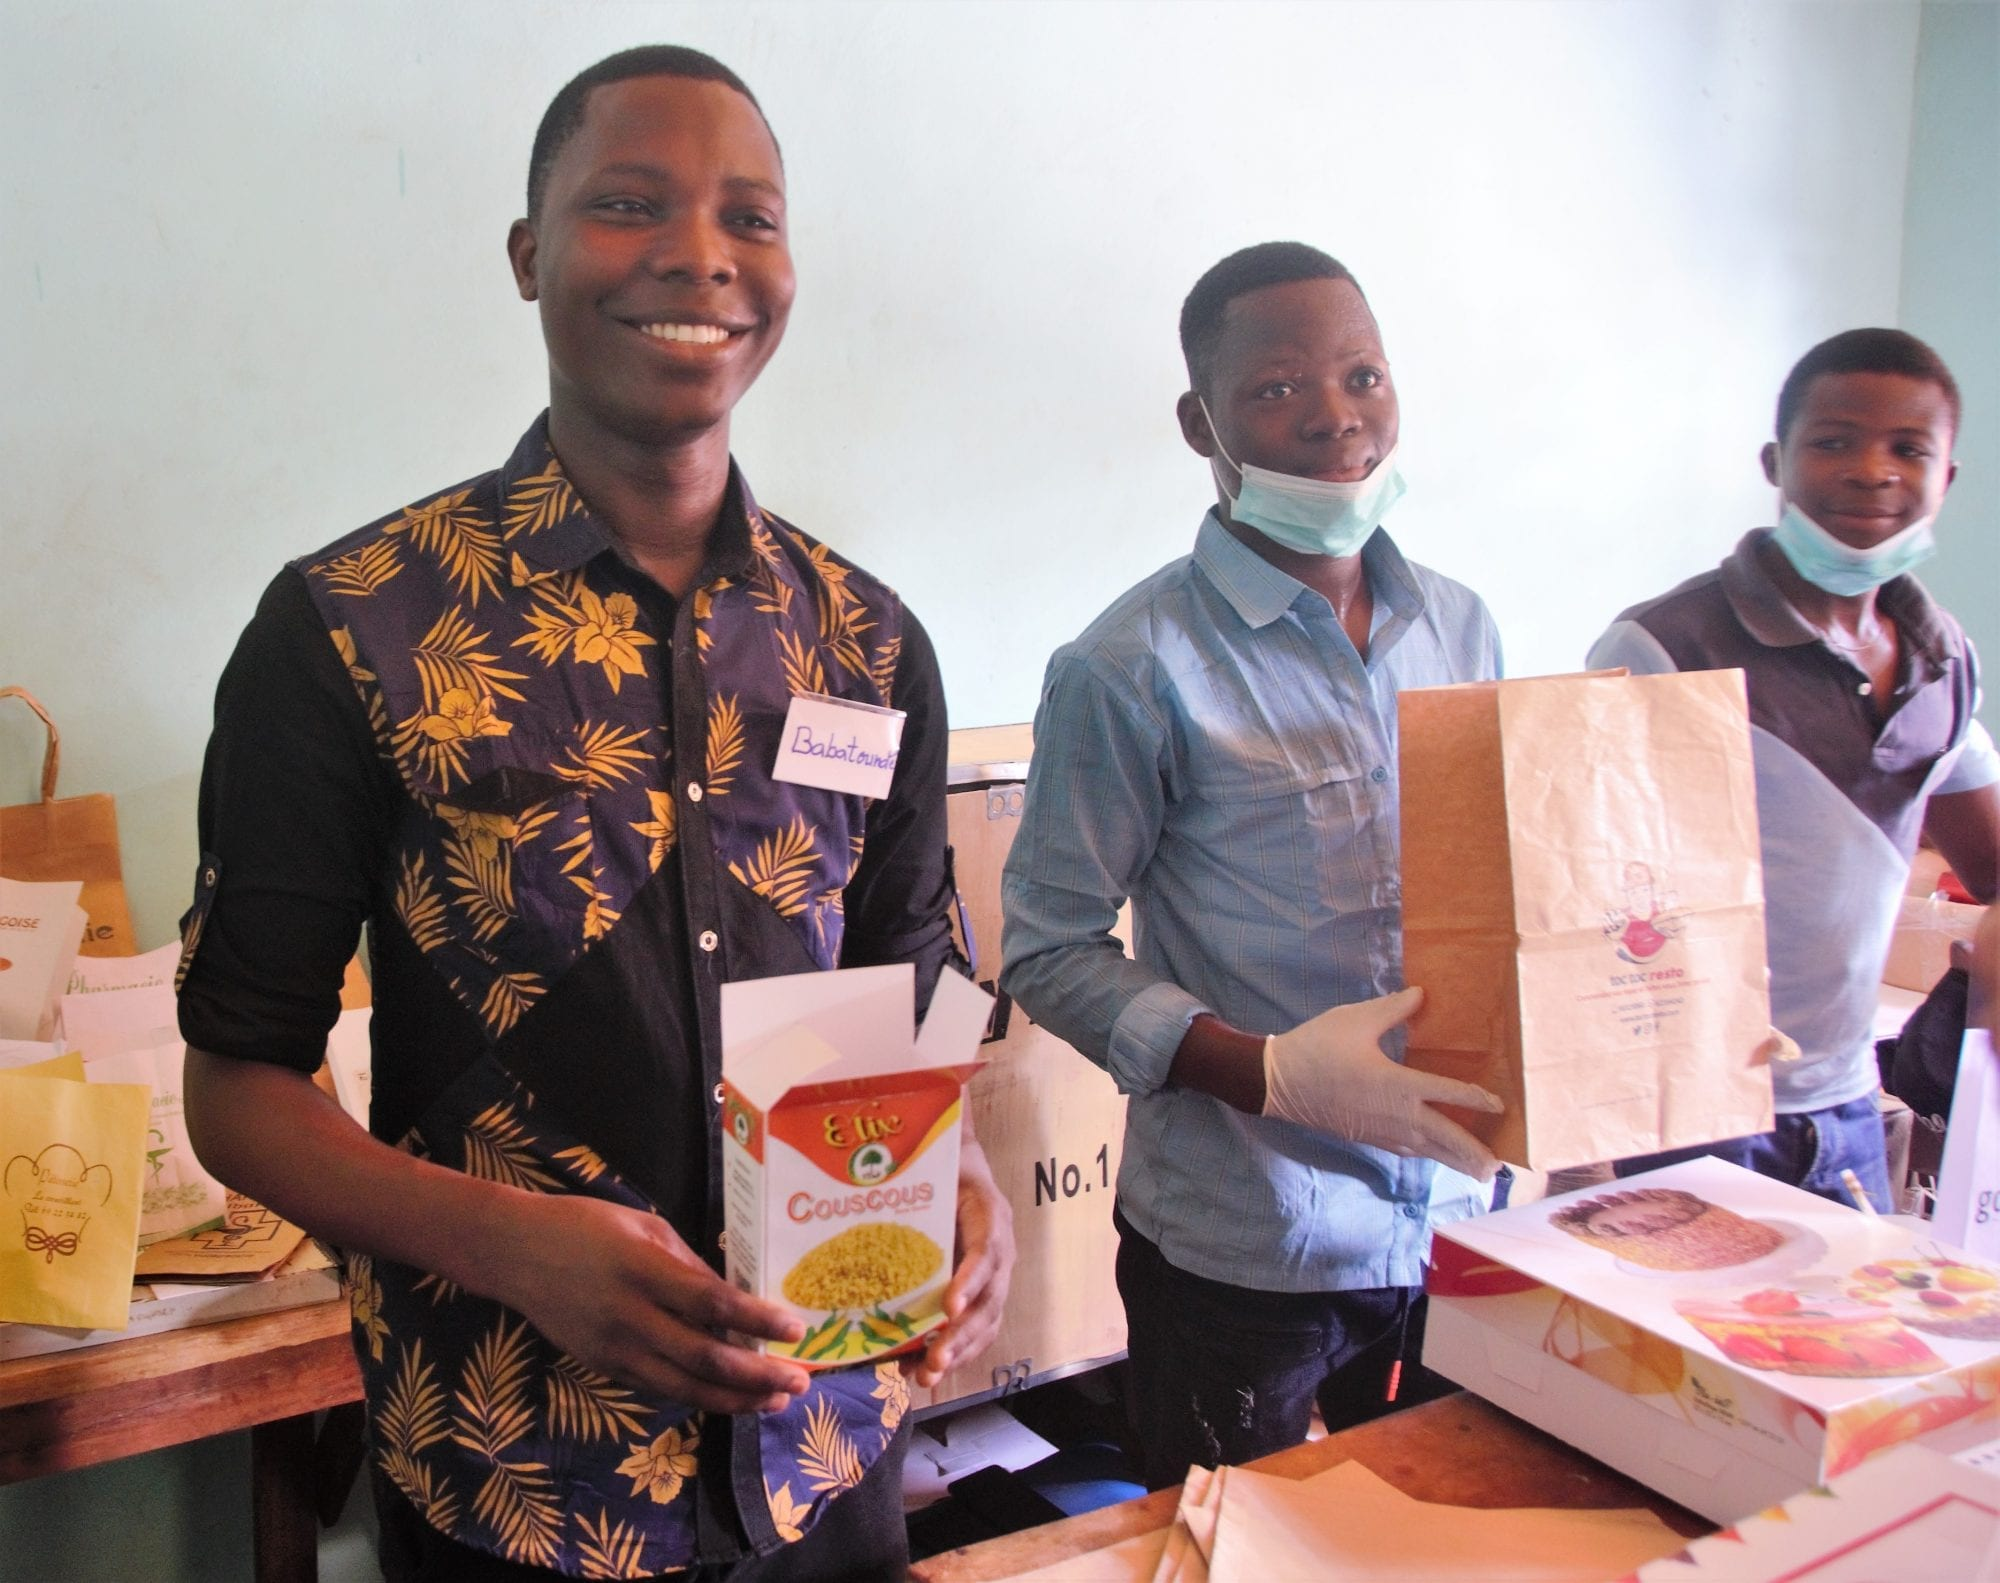 Babatundé Oguidi stands with his colleagues inside his packaging business in Benin